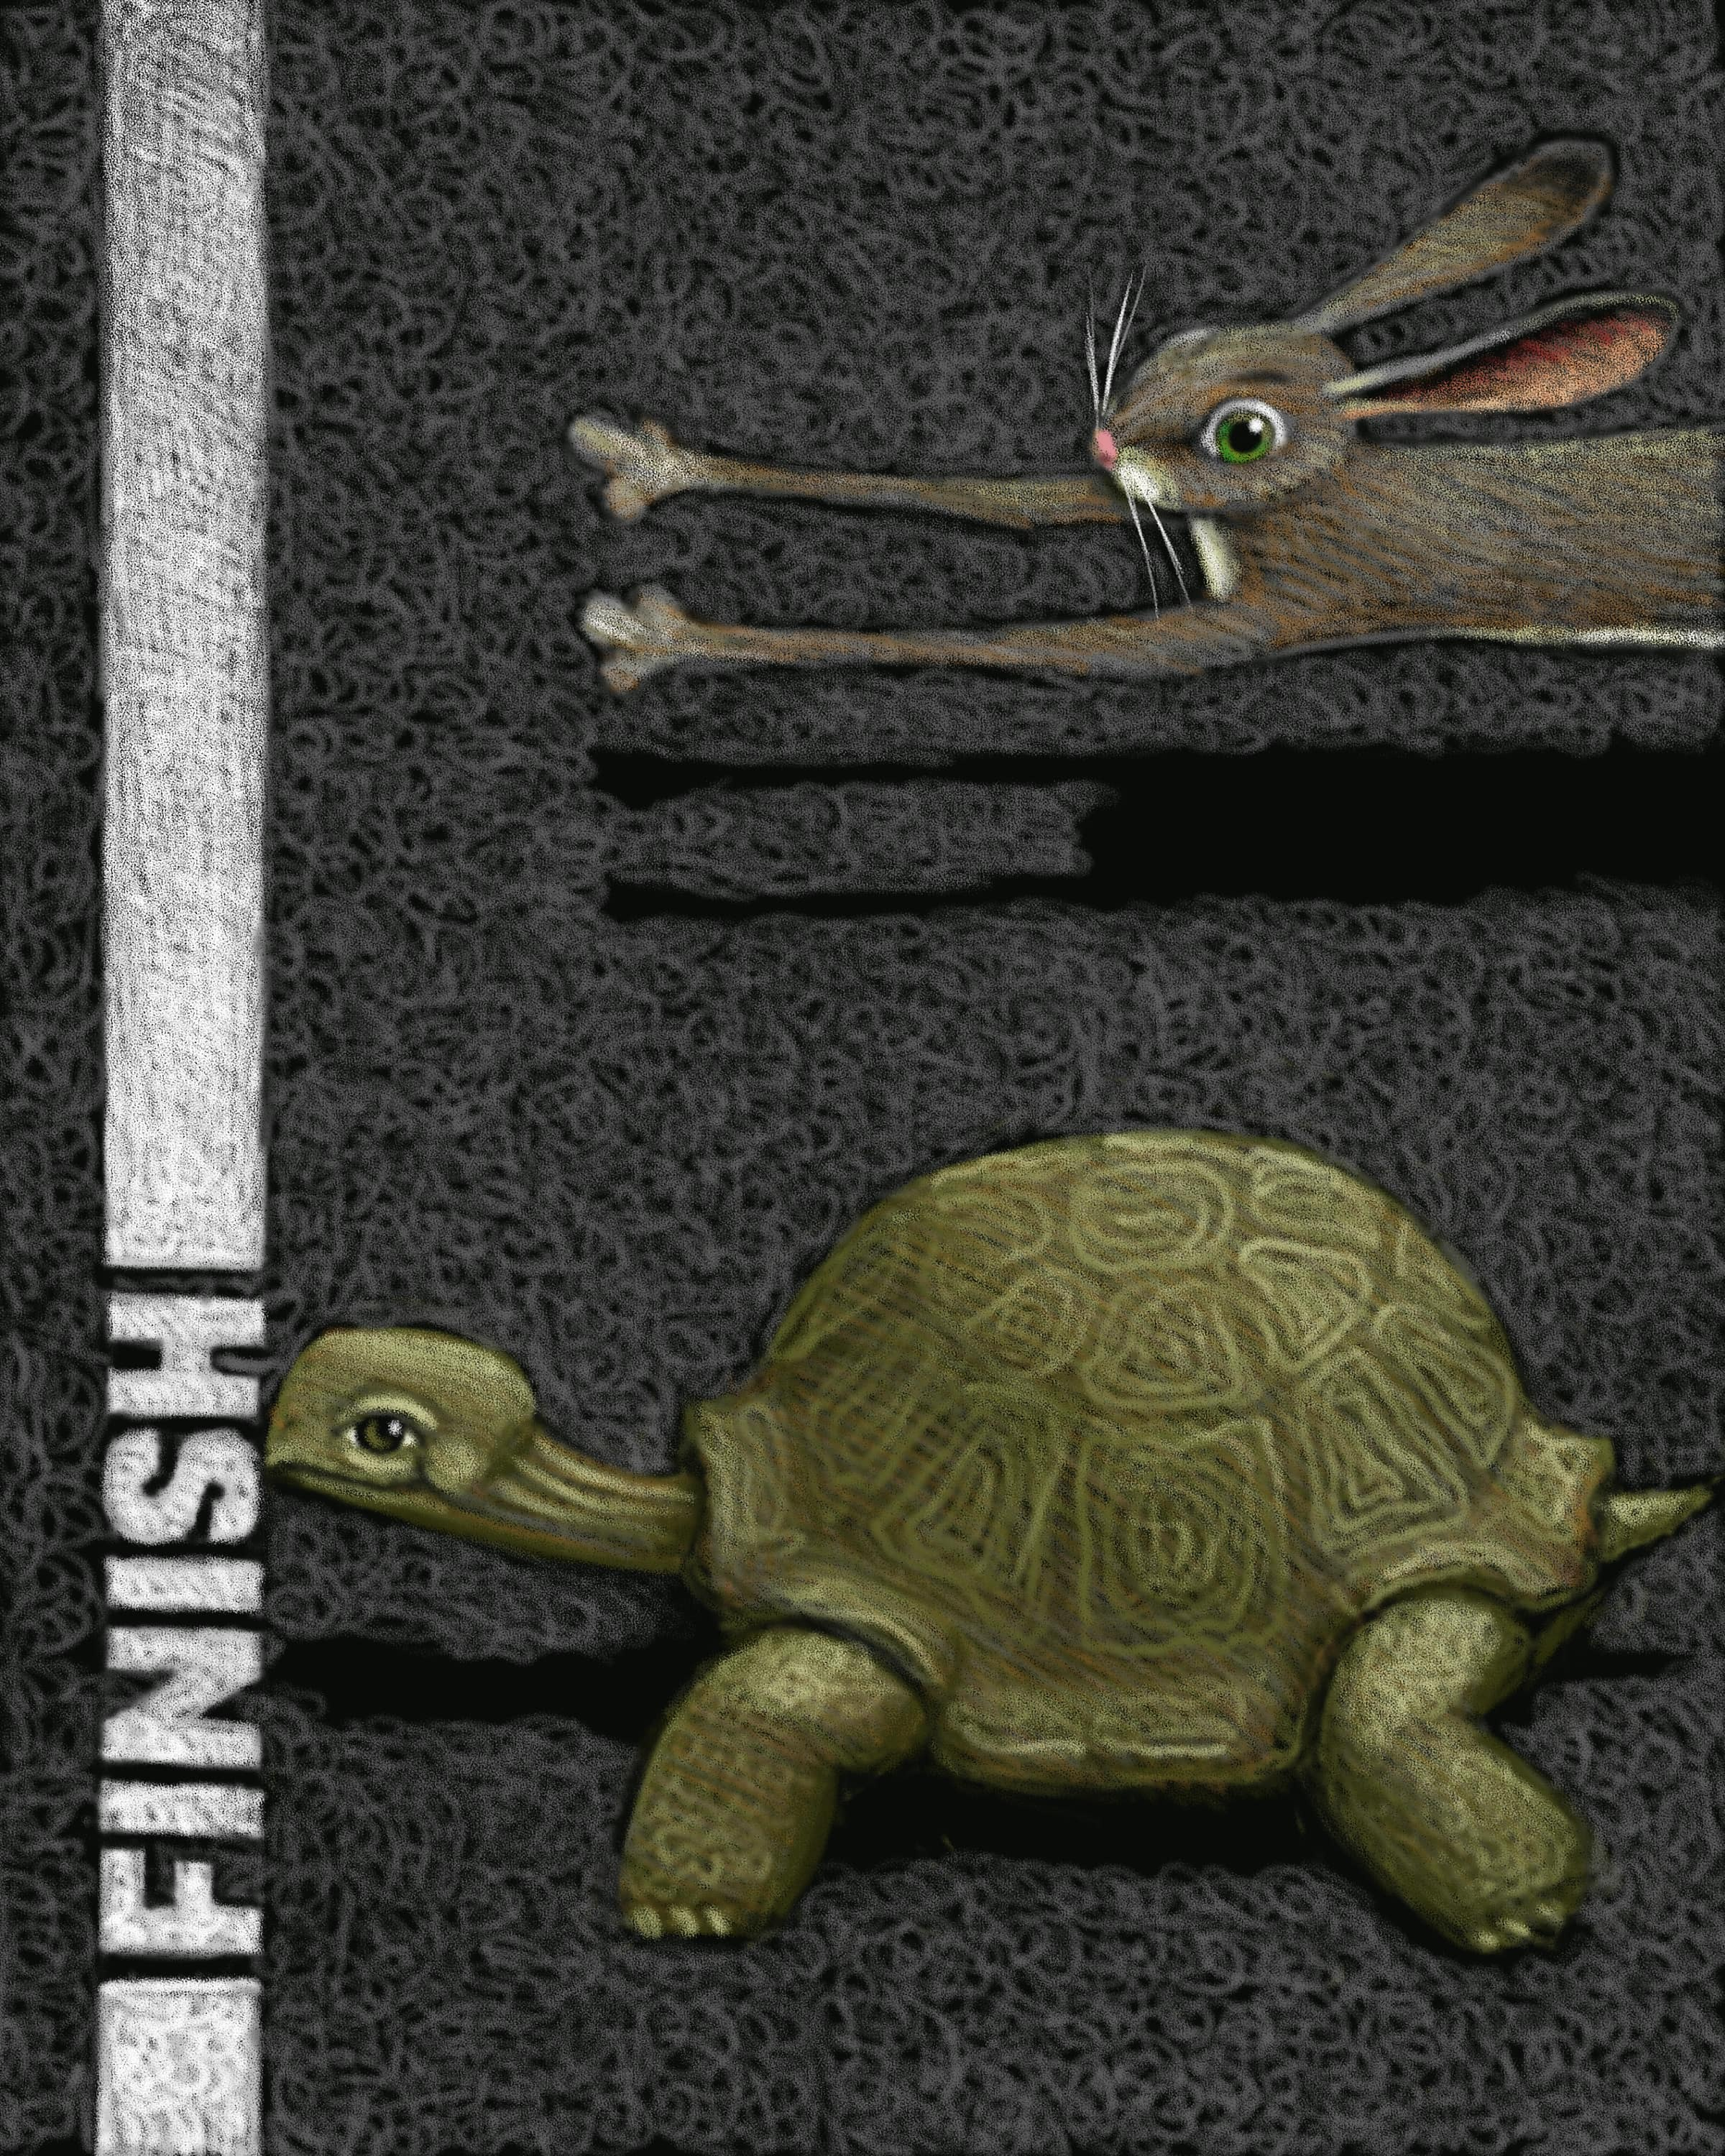 A hare (rapidly mutating Y-STR loci) and a tortoise (slowly mutating Y-STR lociapproach a finish line, with the tortoise in the lead.